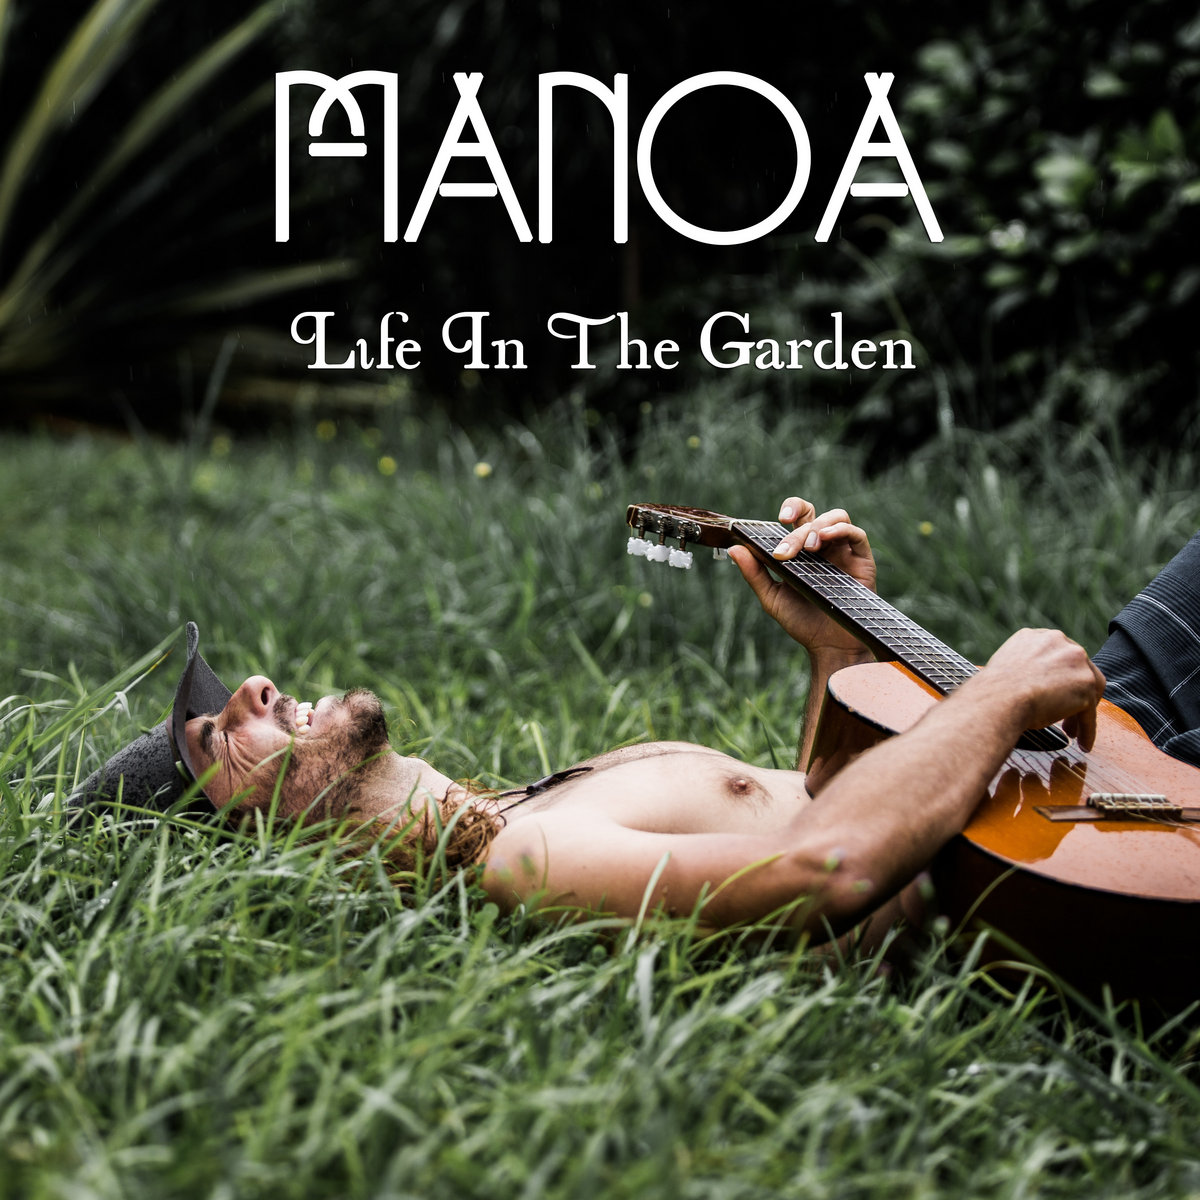 Life In The Garden by Manoa